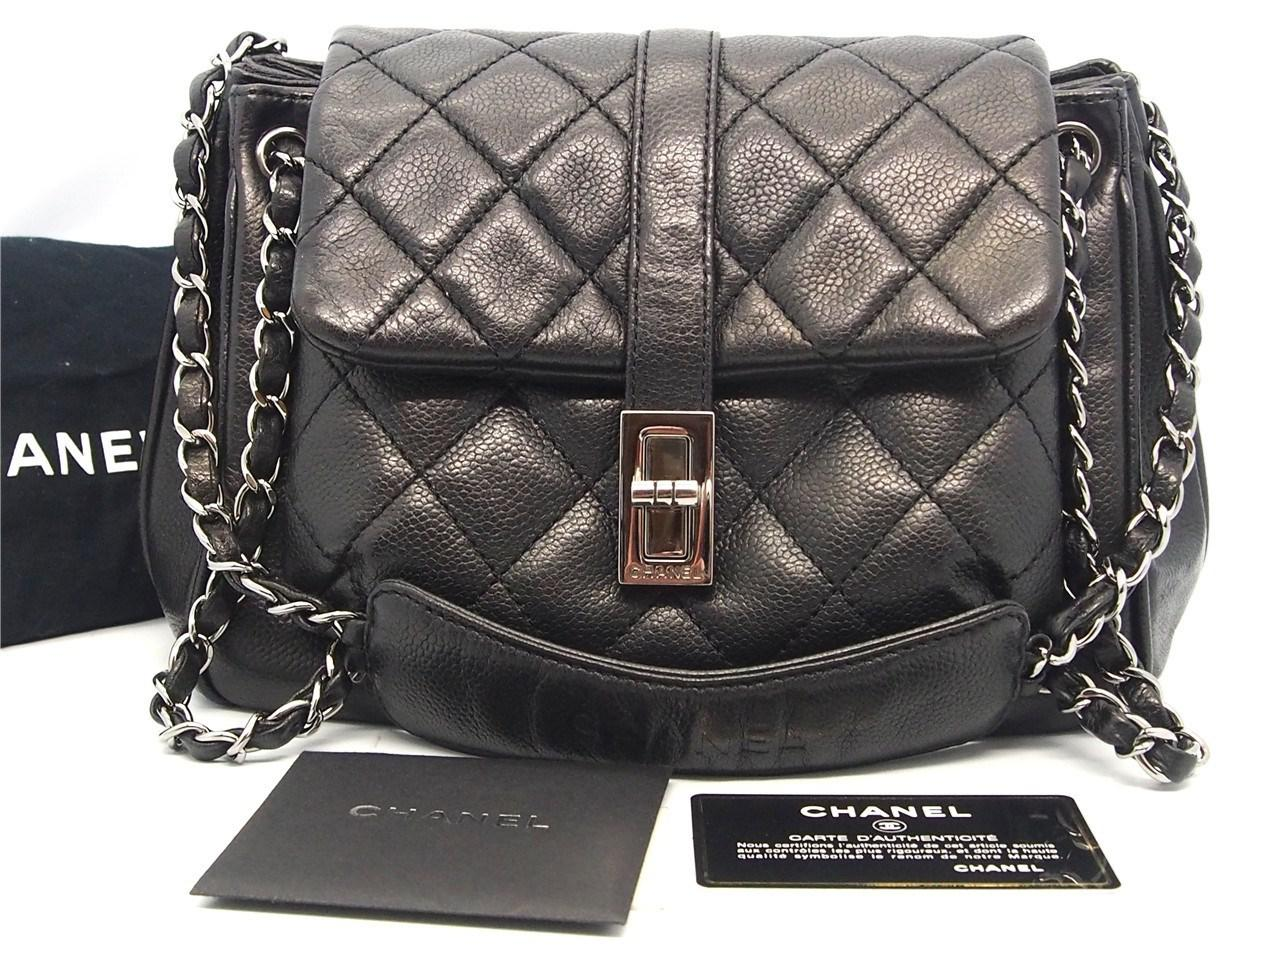 46156bde69ff Lyst - Chanel Authentic Black Quilted Soft Caviar Leather Reissue ...